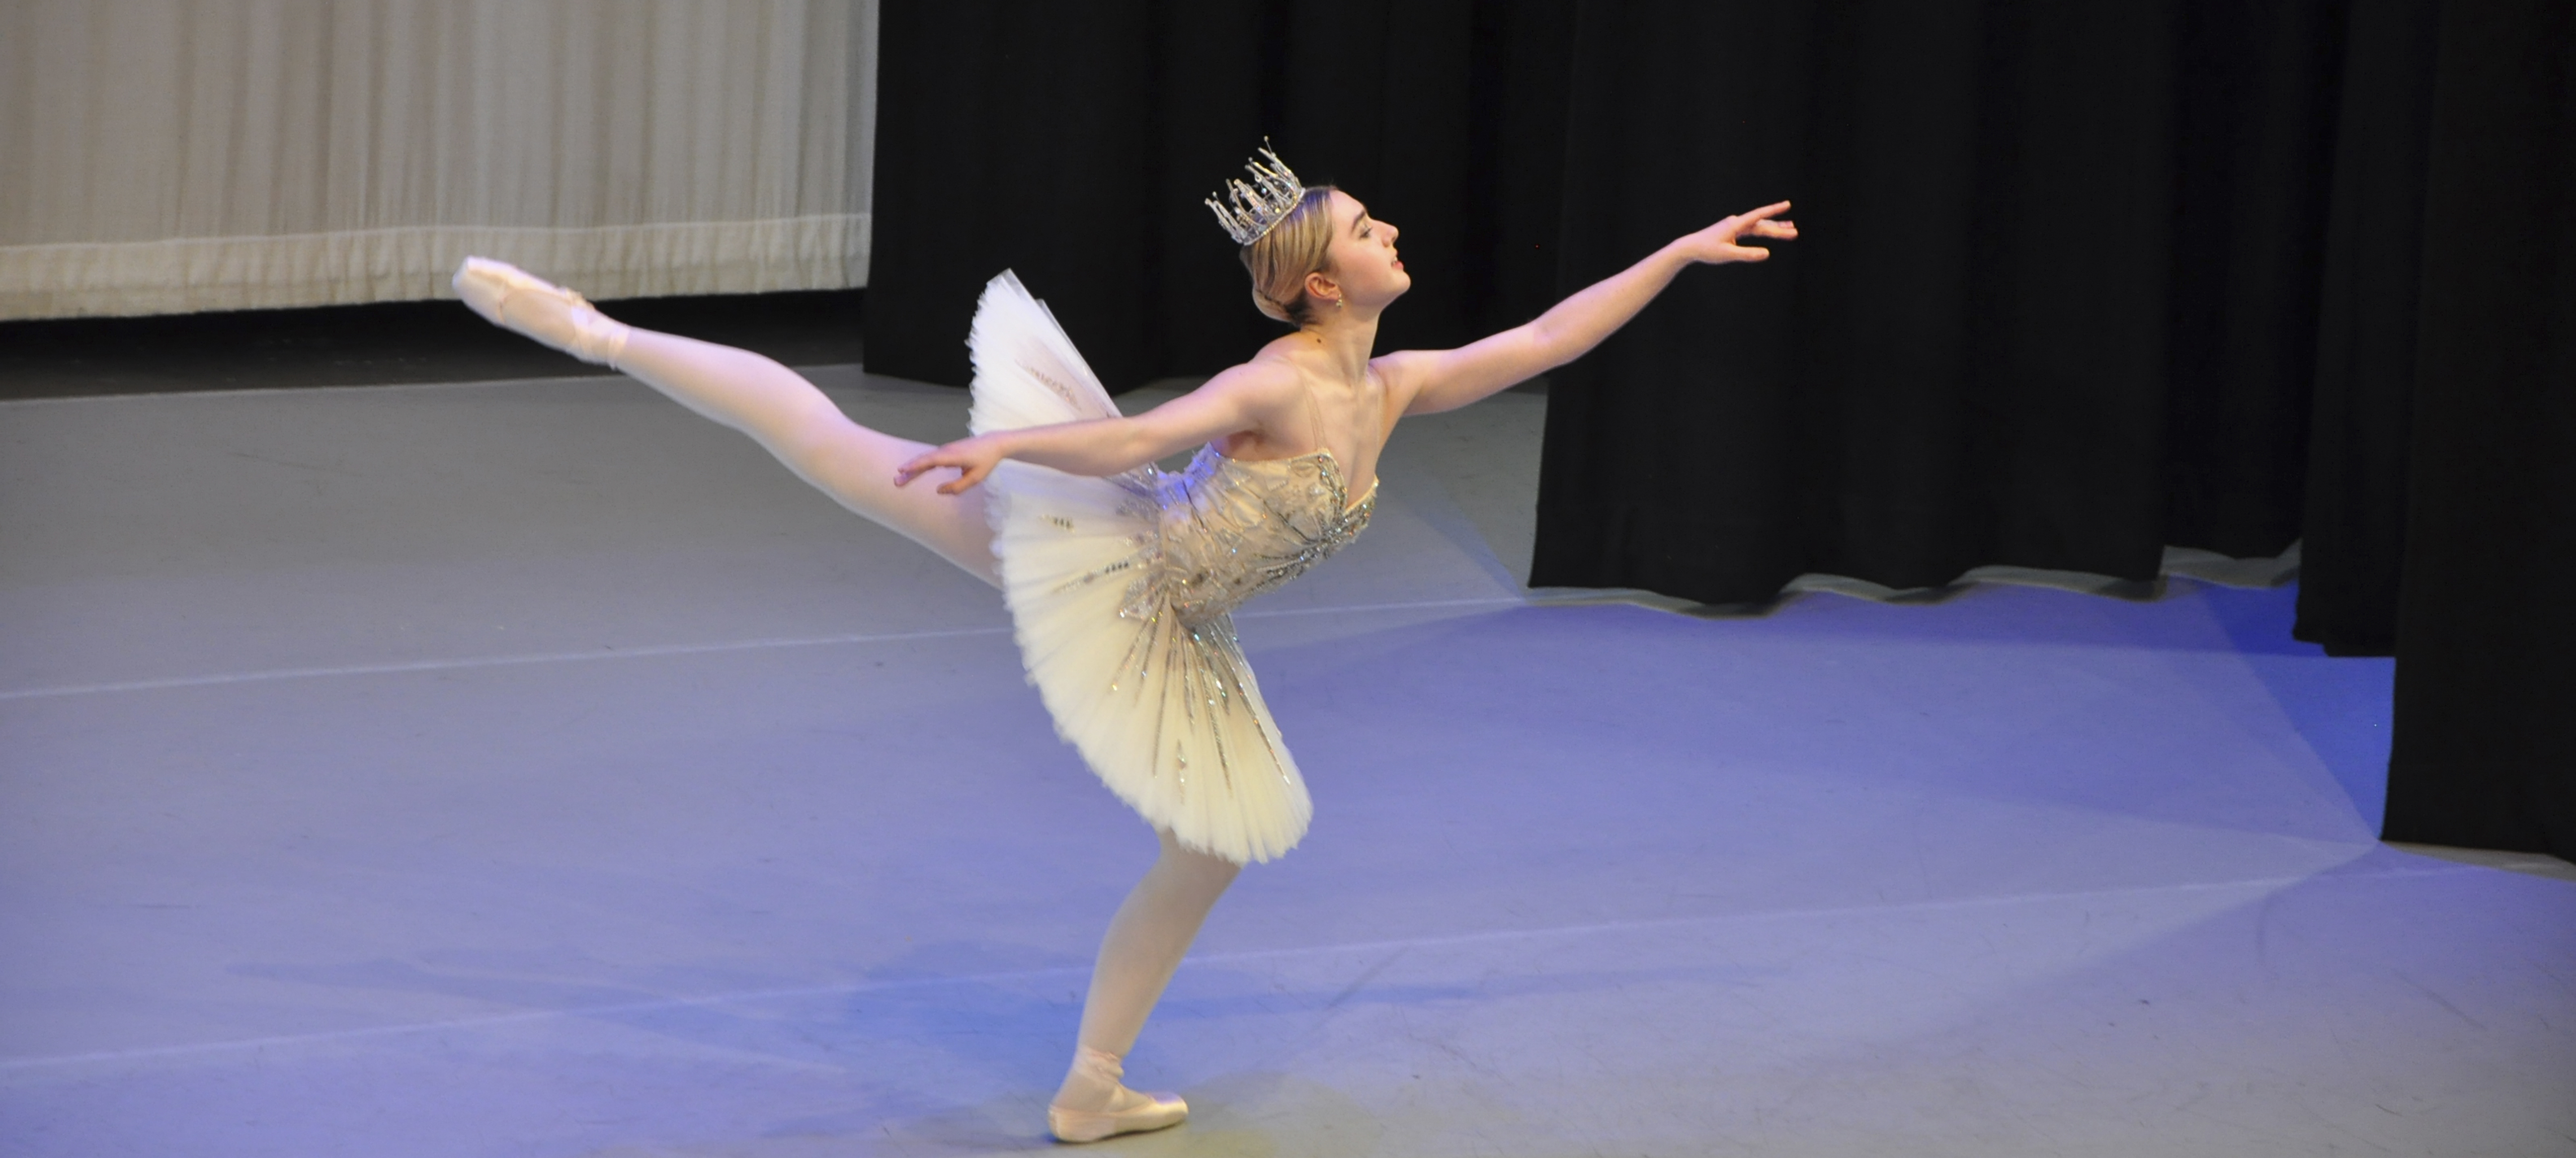 World class ballet comes to Blackley